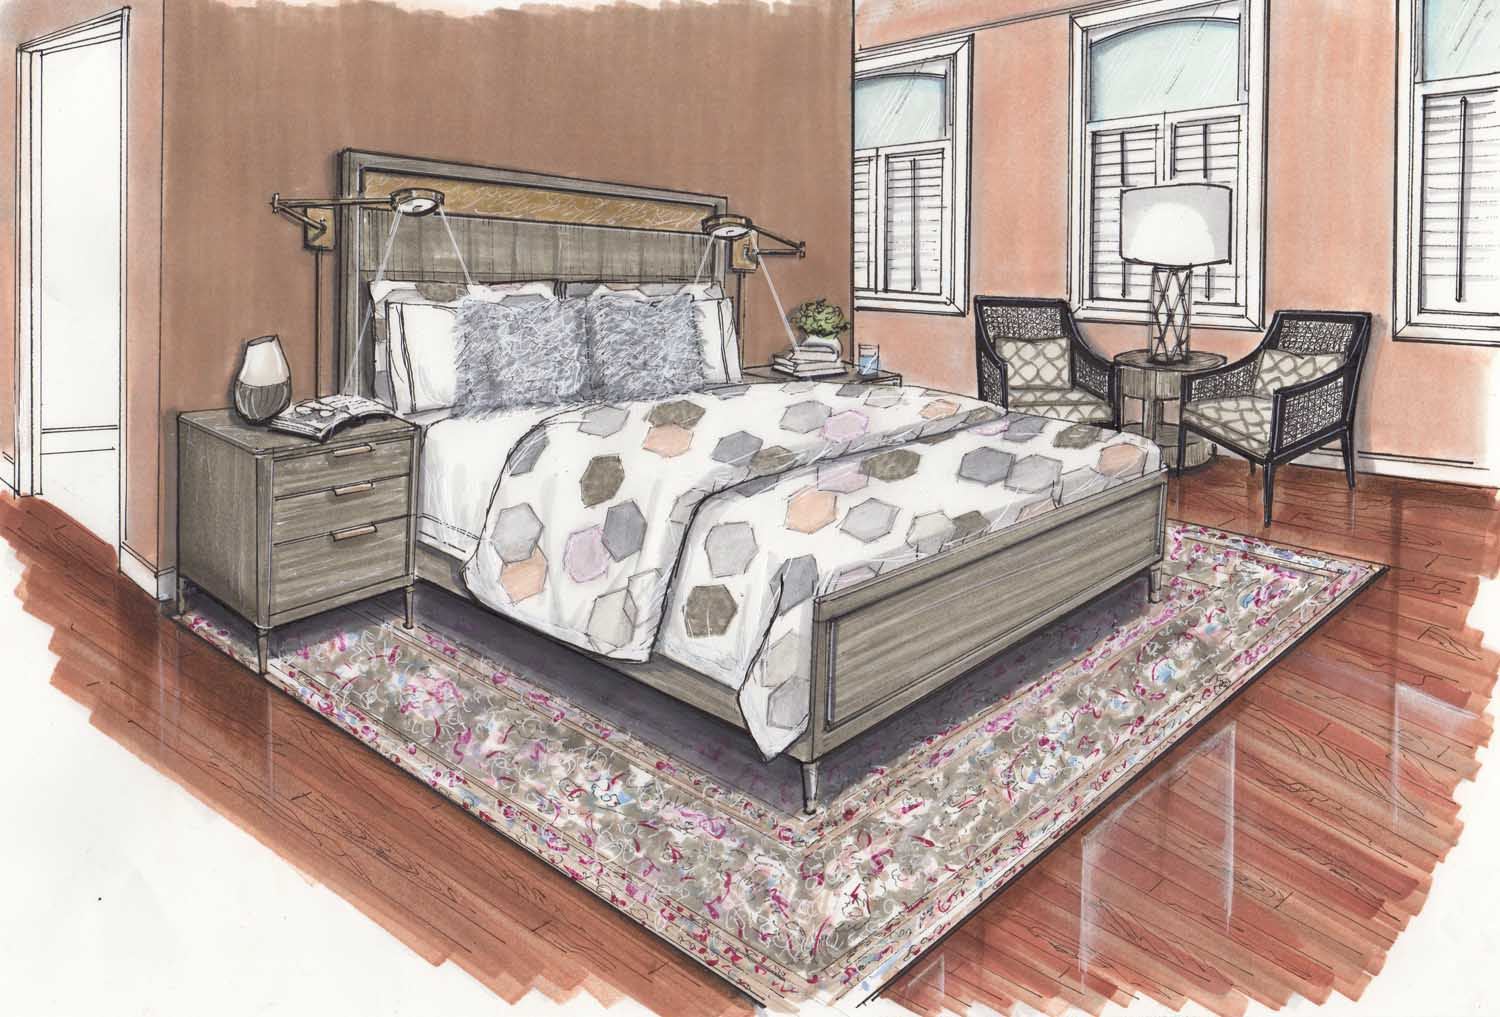 Baltimore Maryland Butchers Hill Master Bedroom Update Design Details Rendering – Designer Bestie April Force Pardoe Interiors.jpg